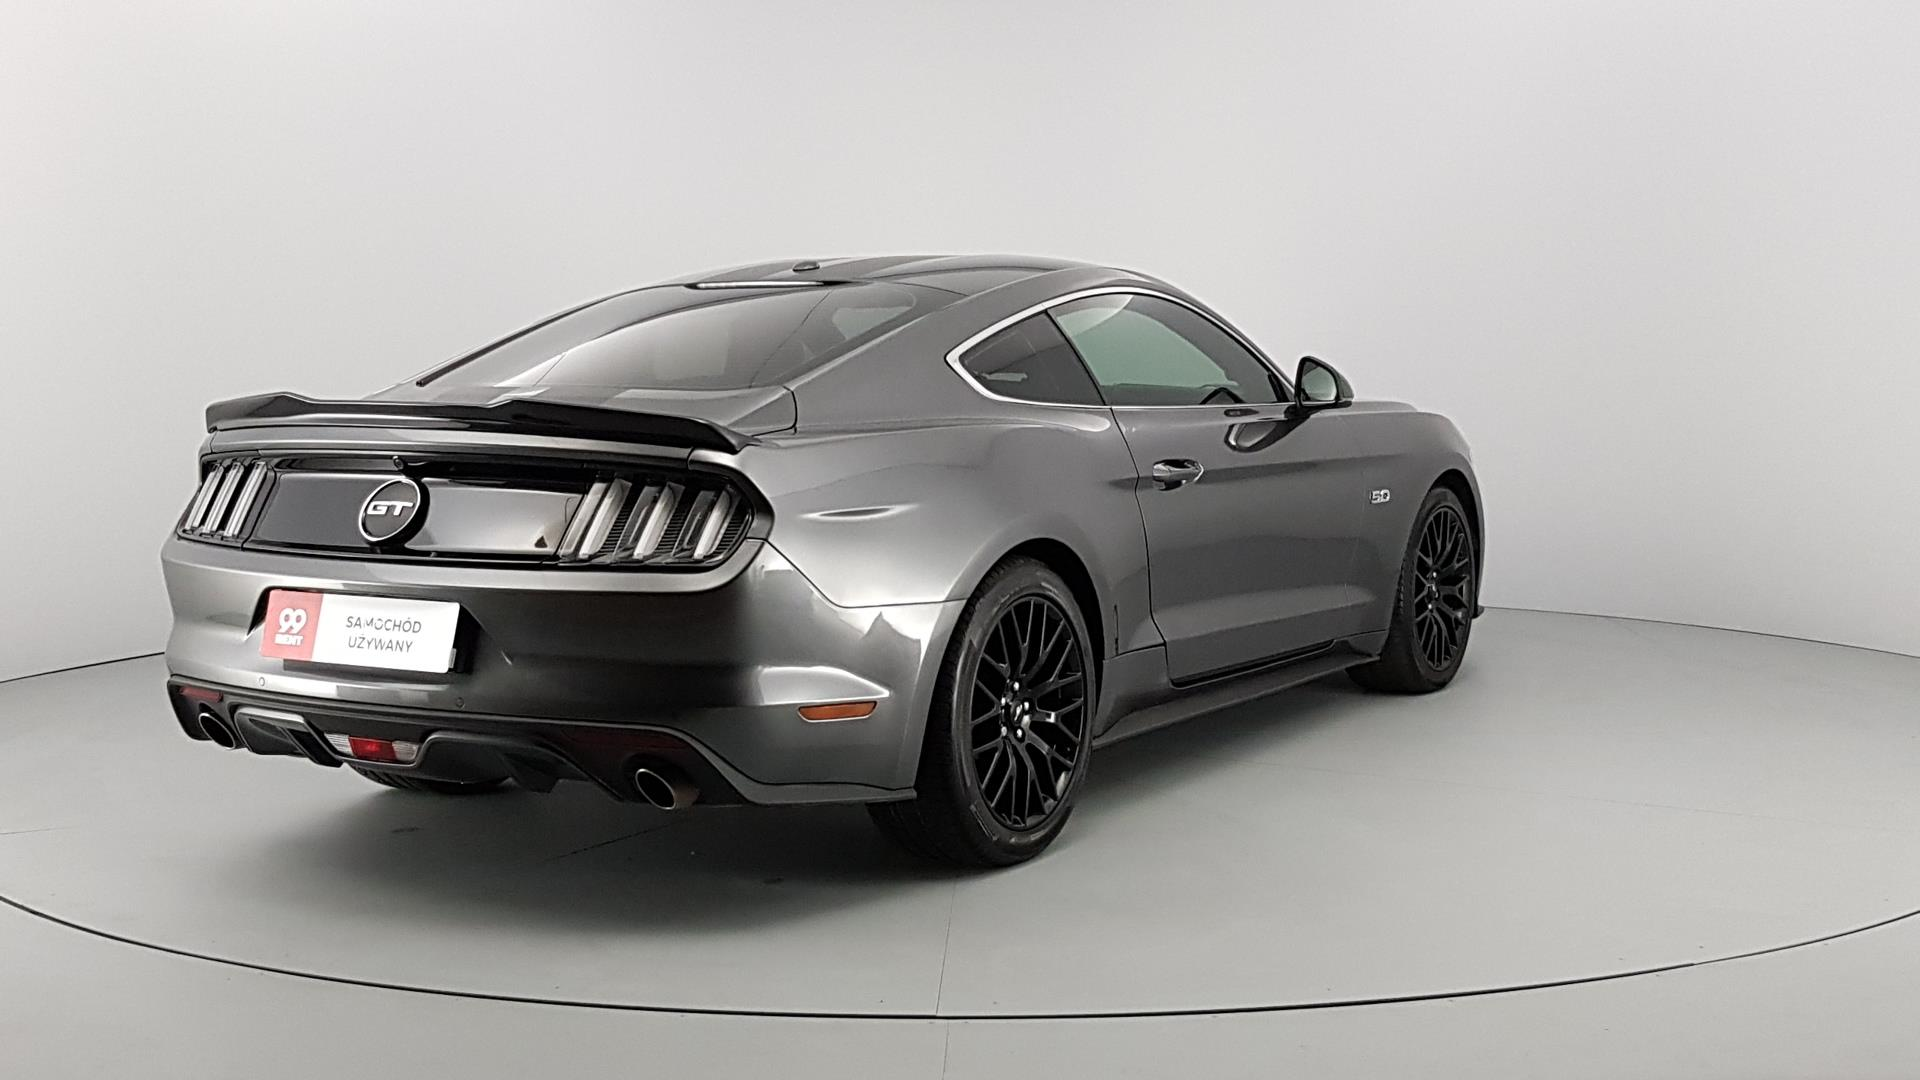 [FORD (USA),Mustang,2012]